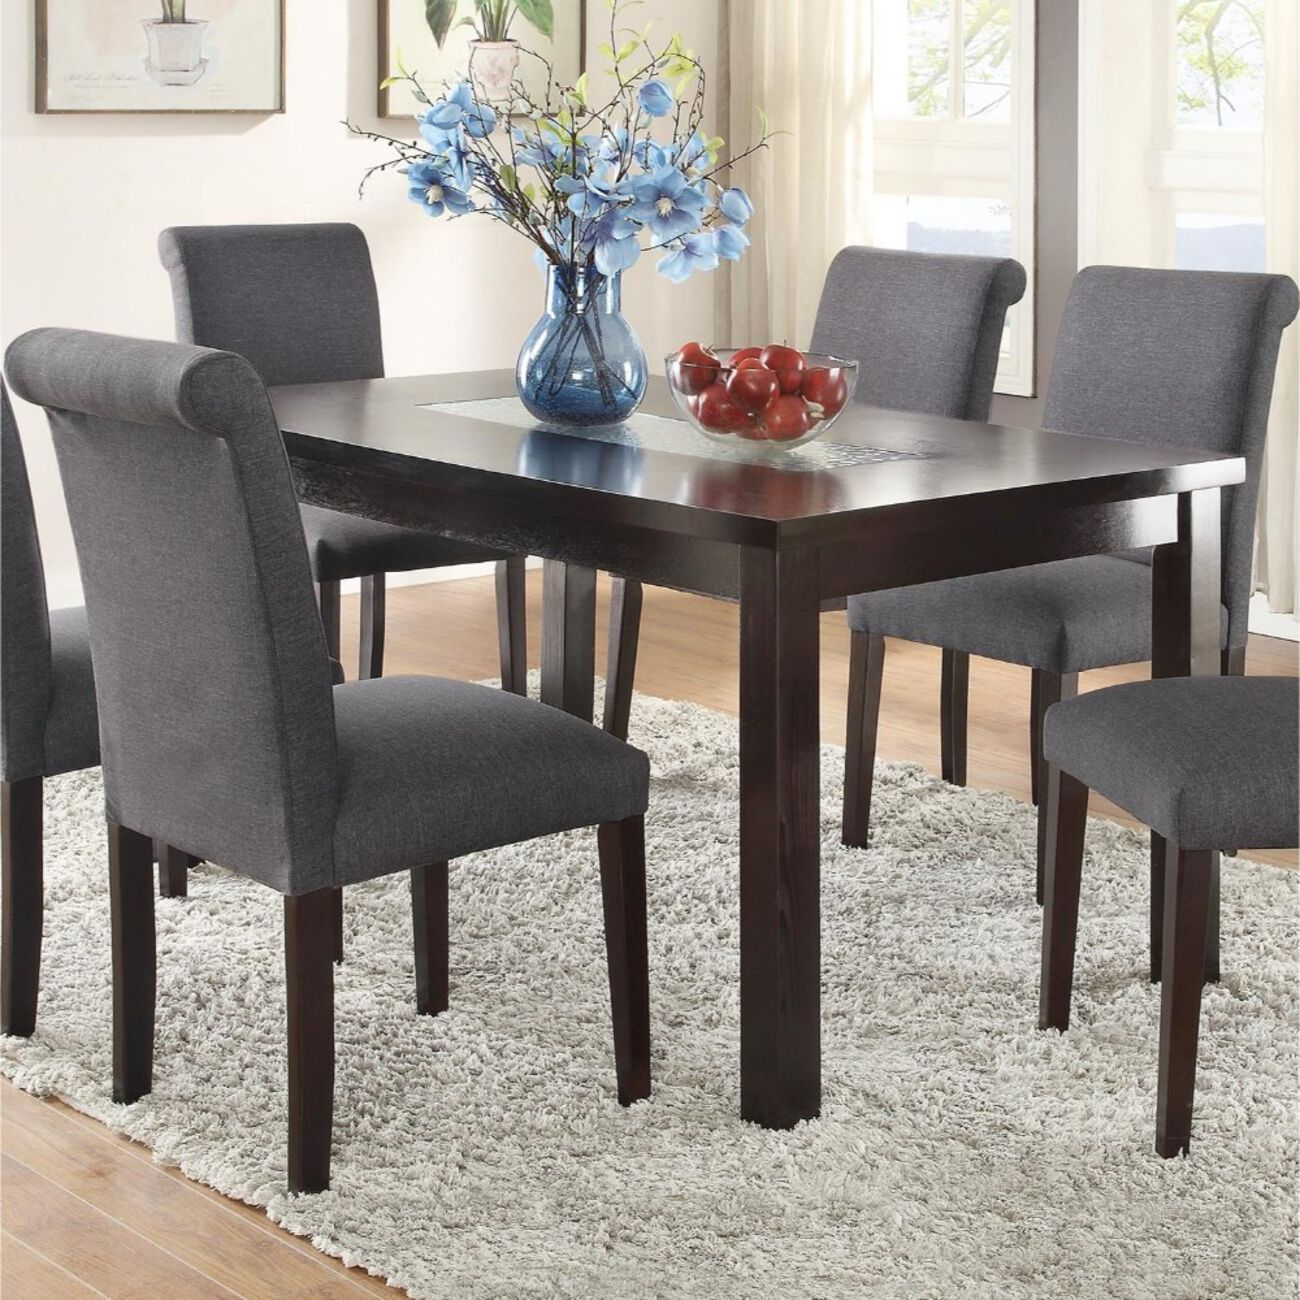 Wooden Dining Table With Tempered Glass Top, Brown